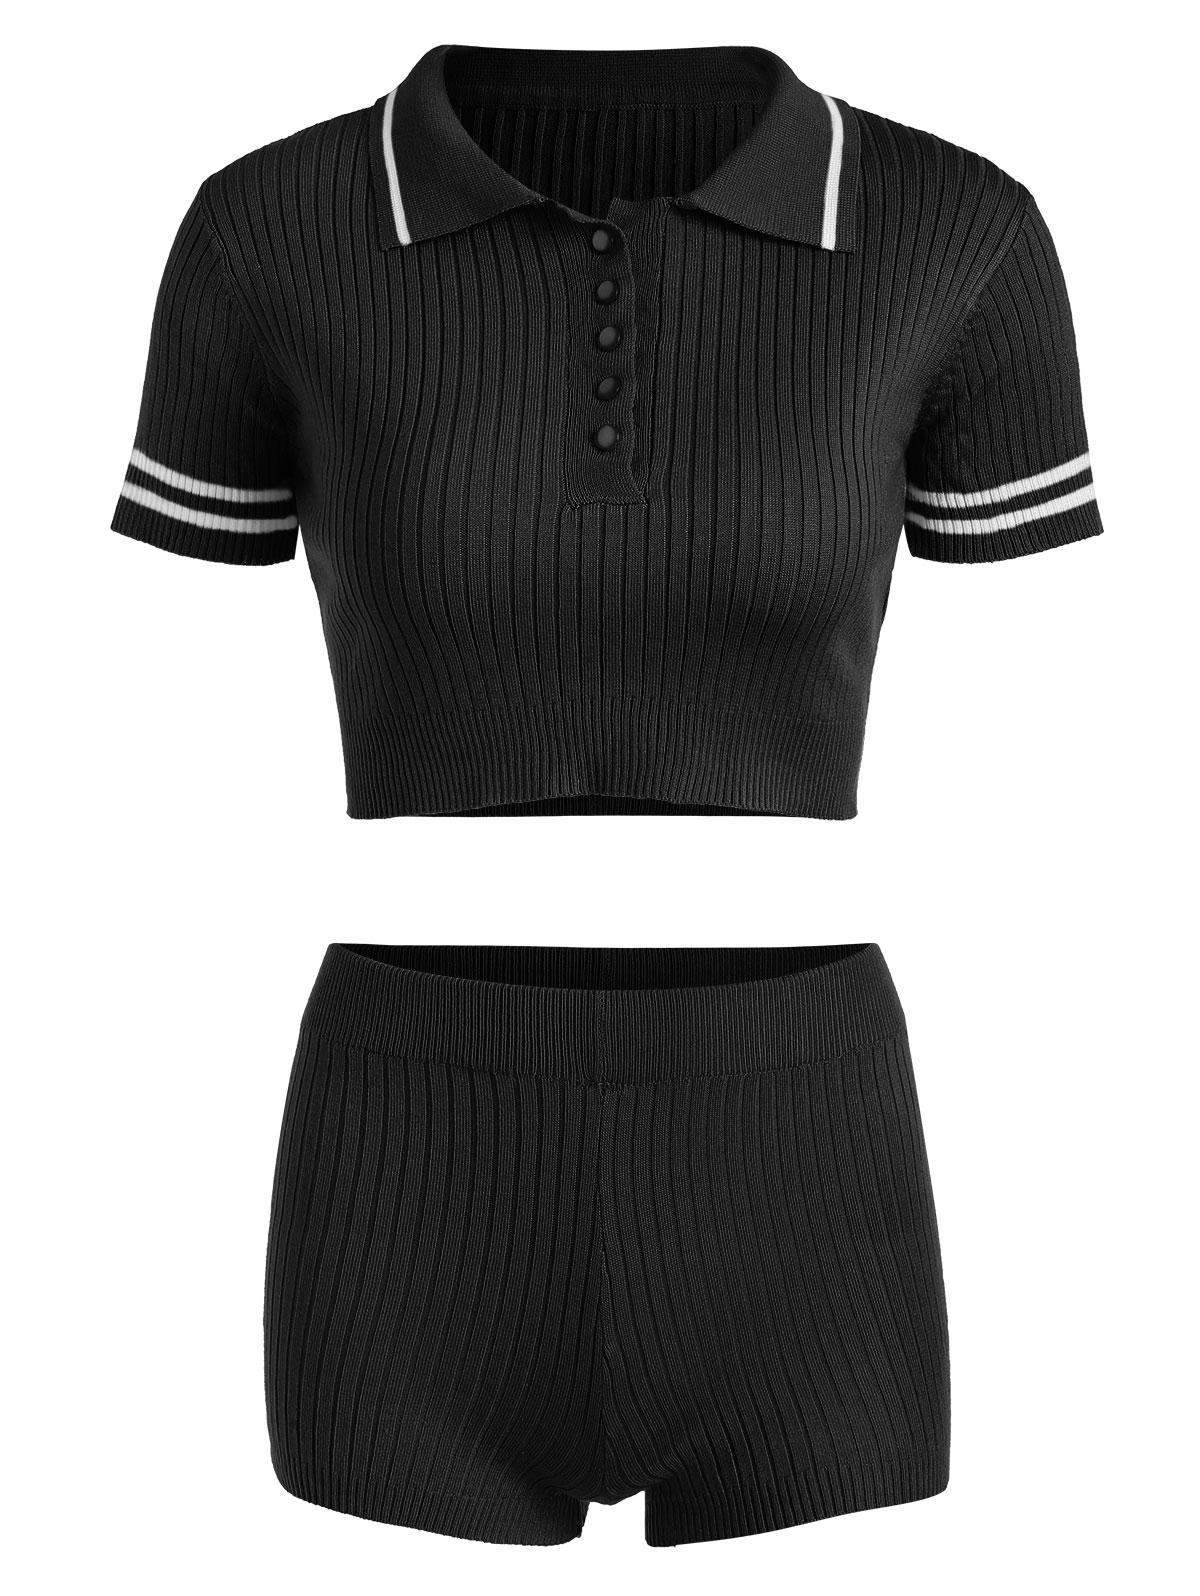 Ribbed Striped Half Placket Two Piece Shorts Set